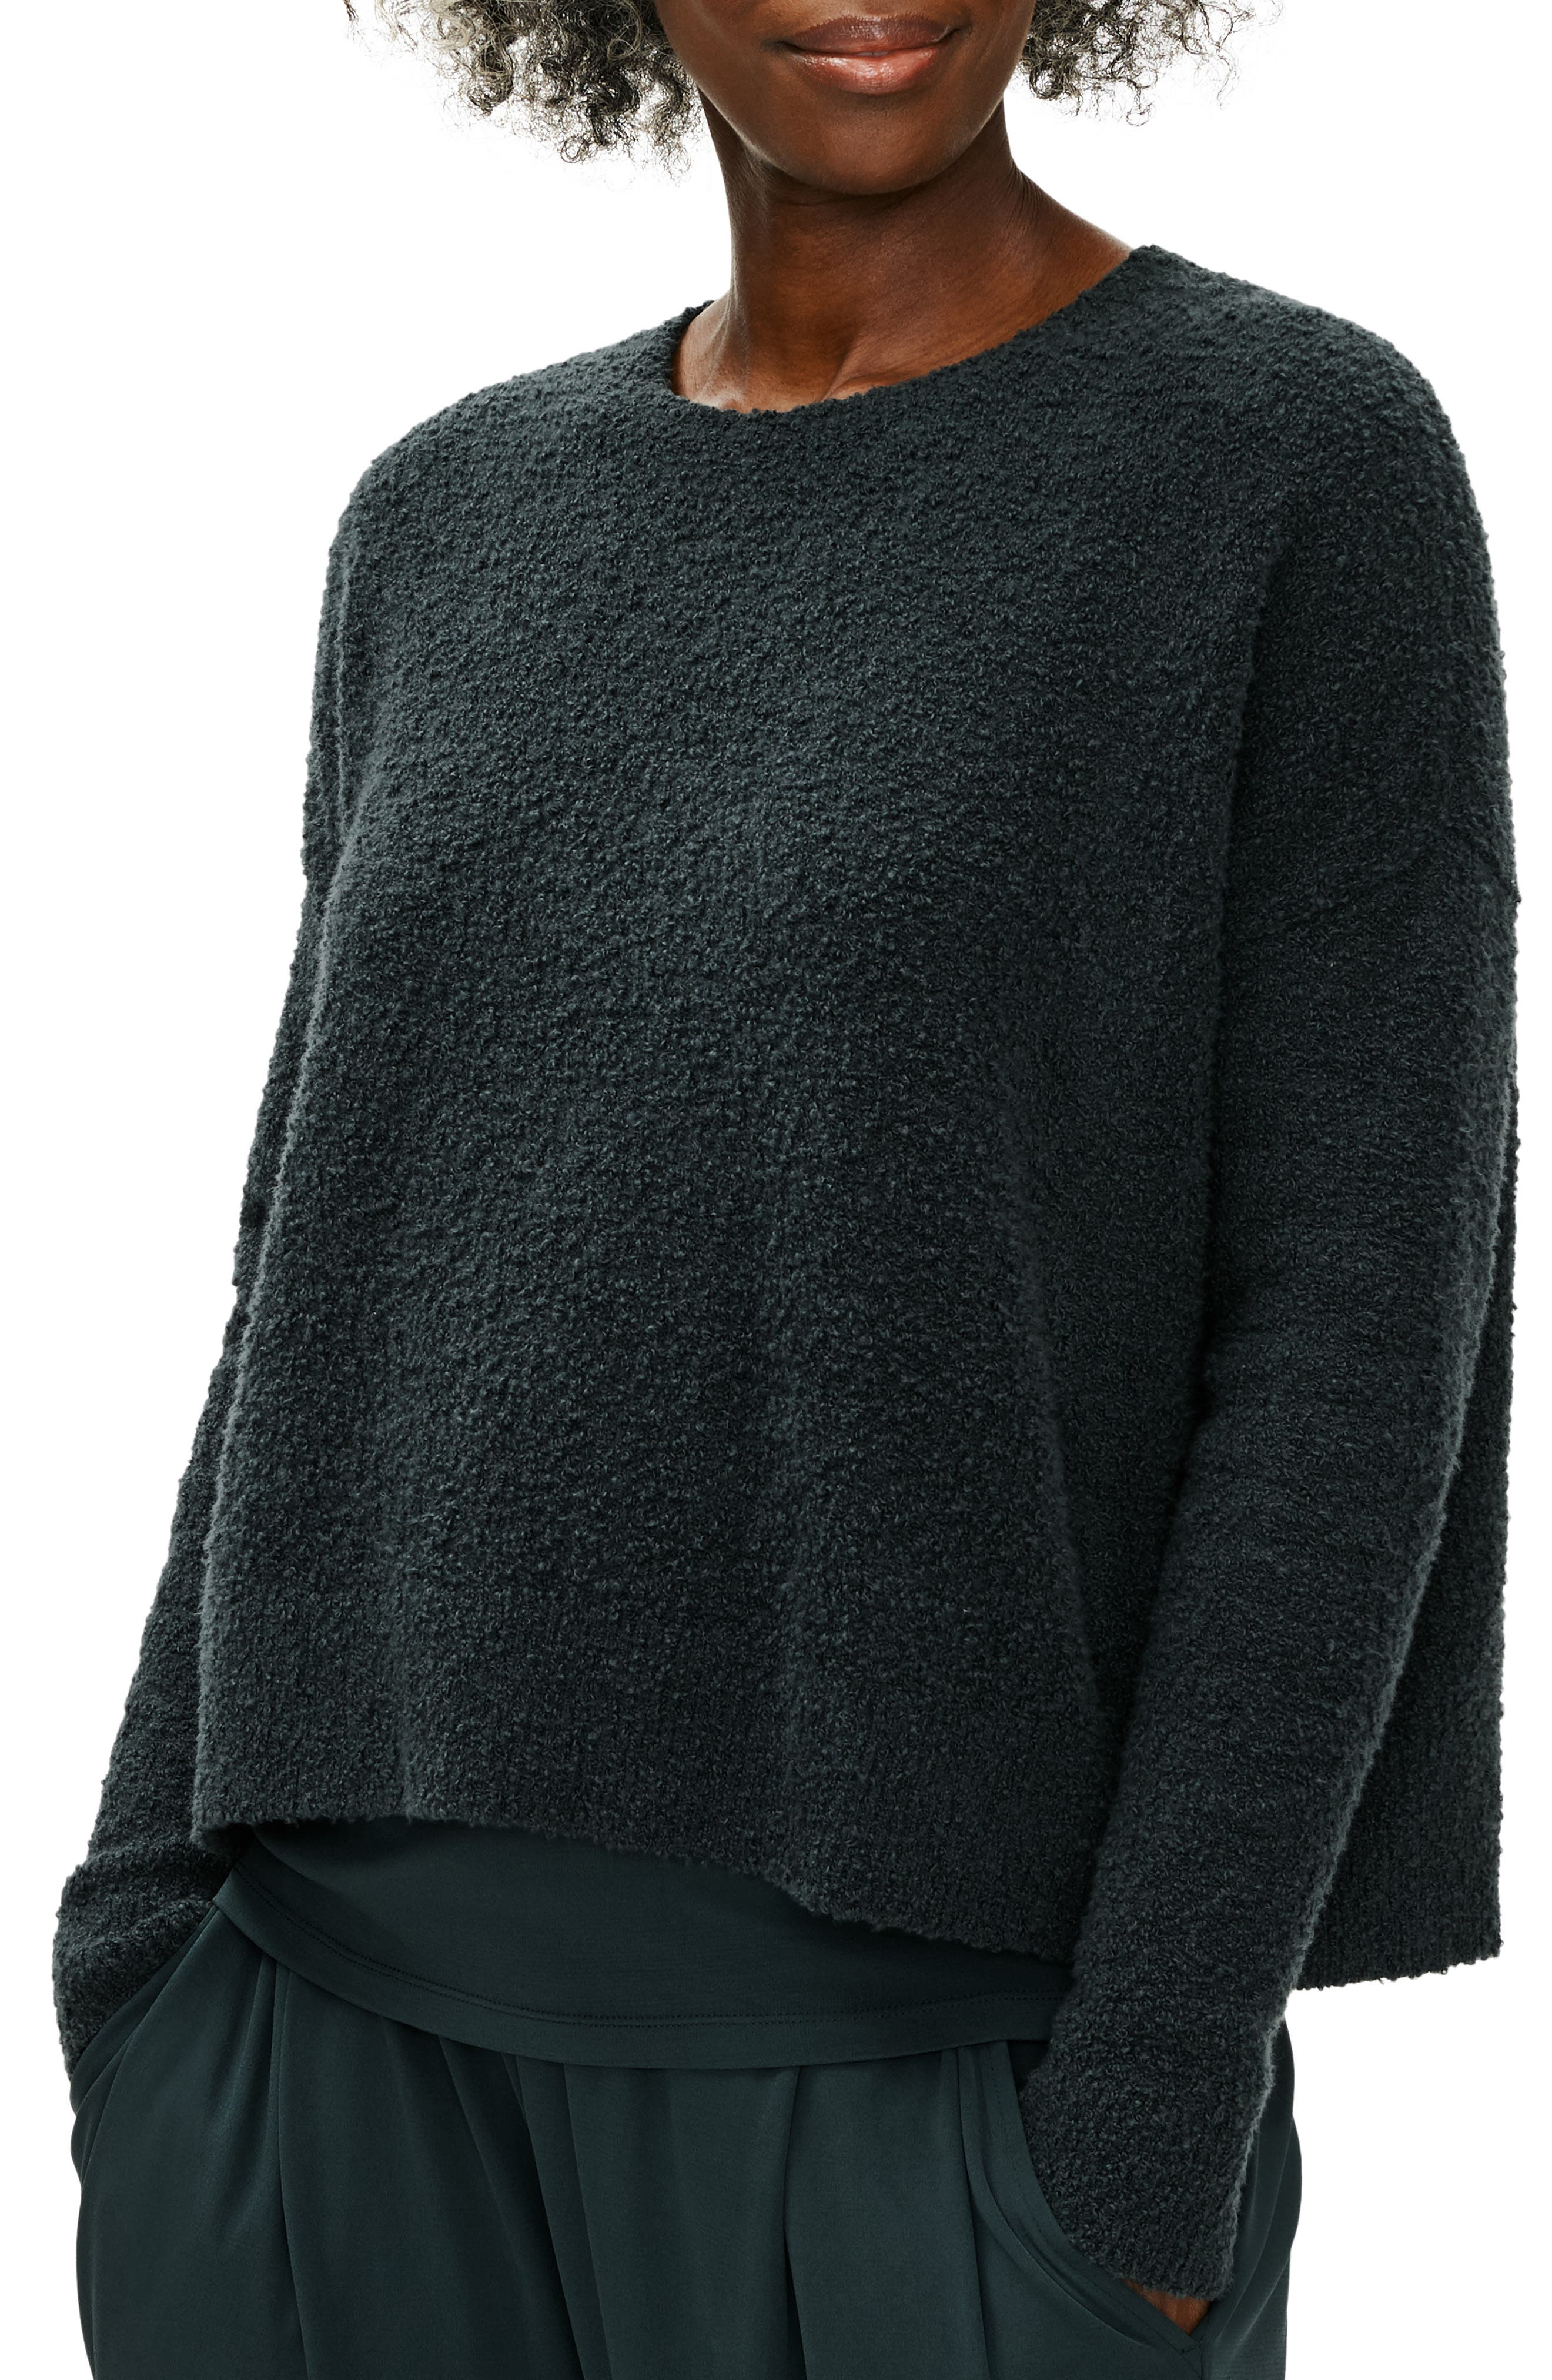 Boucle yarns spun with organic cotton texture this slouchy pullover that warms up a work-to-play day. Style Name: Eileen Fisher Crewneck Boxy Pullover. Style Number: 6110496. Available in stores.